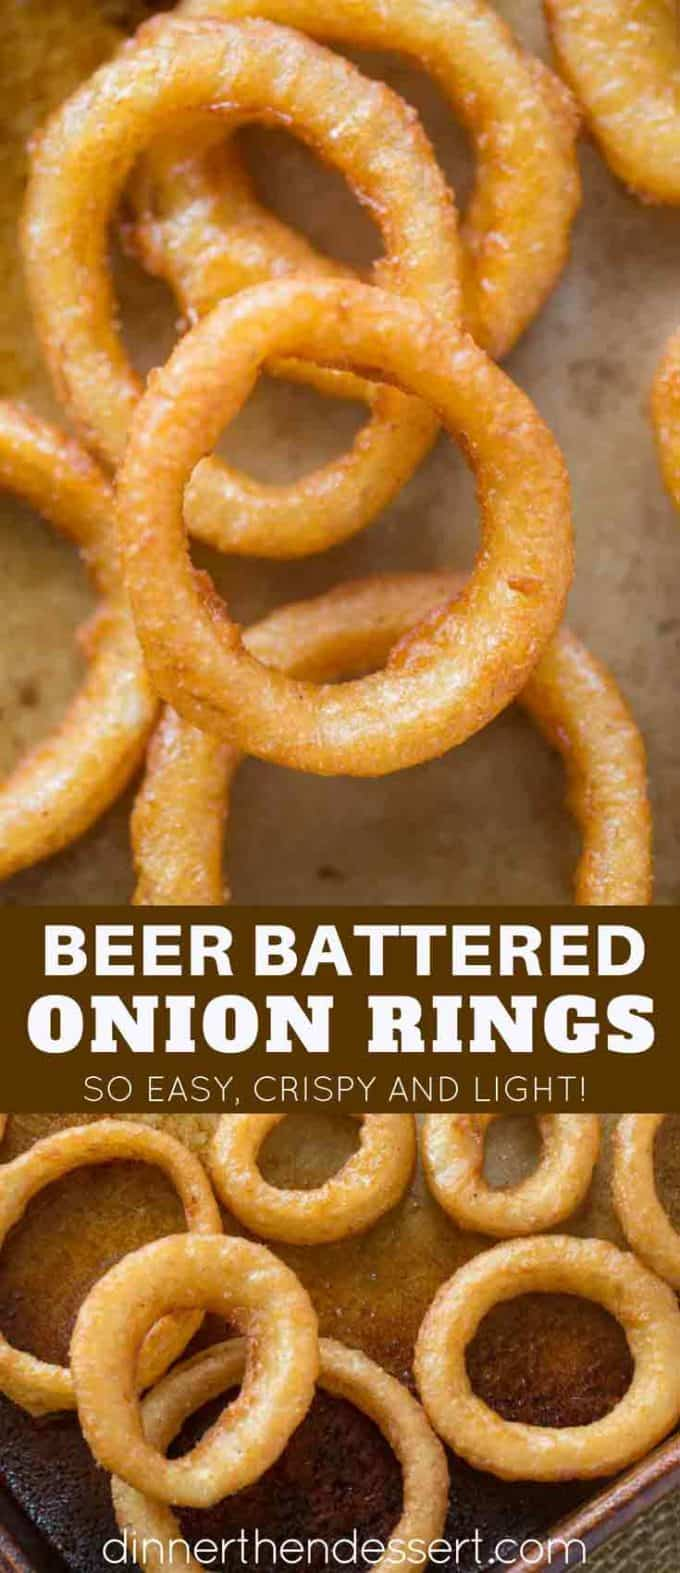 Beer Battered Onion Rings with Buttermilk